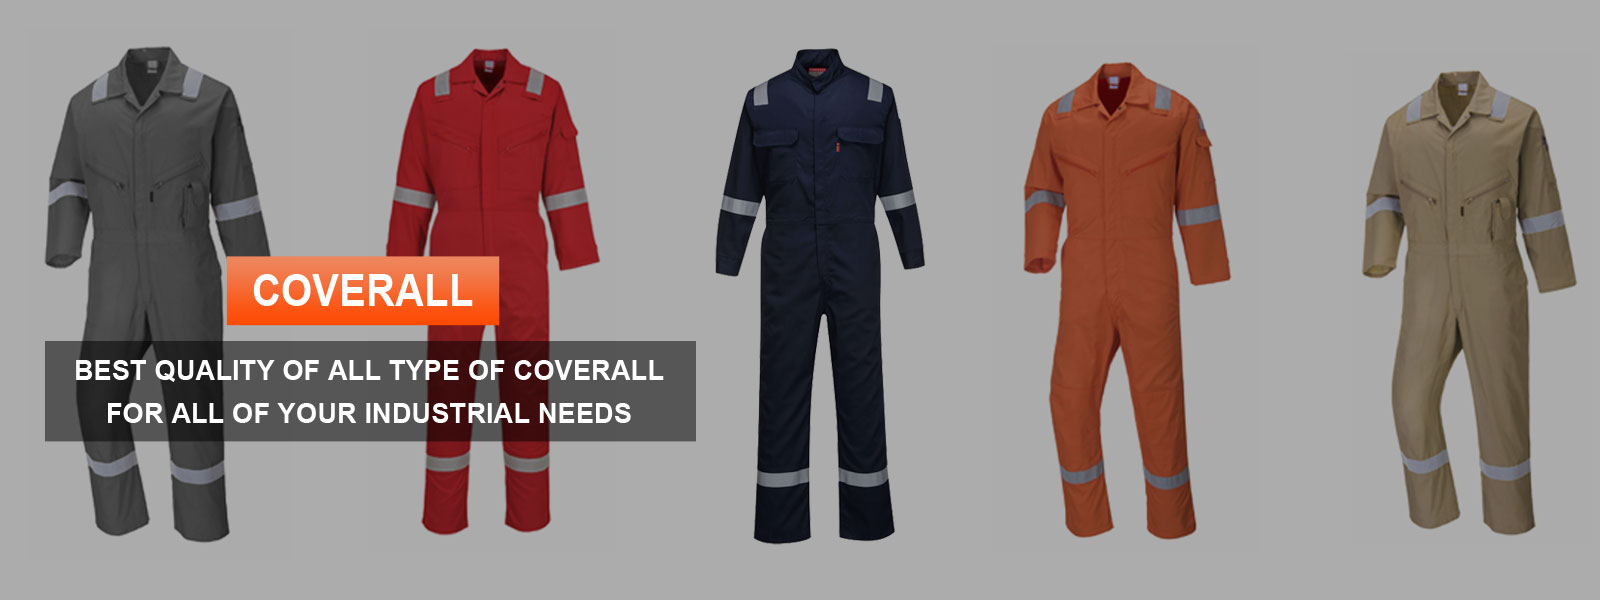 Coverall Manufacturers in Mauritania